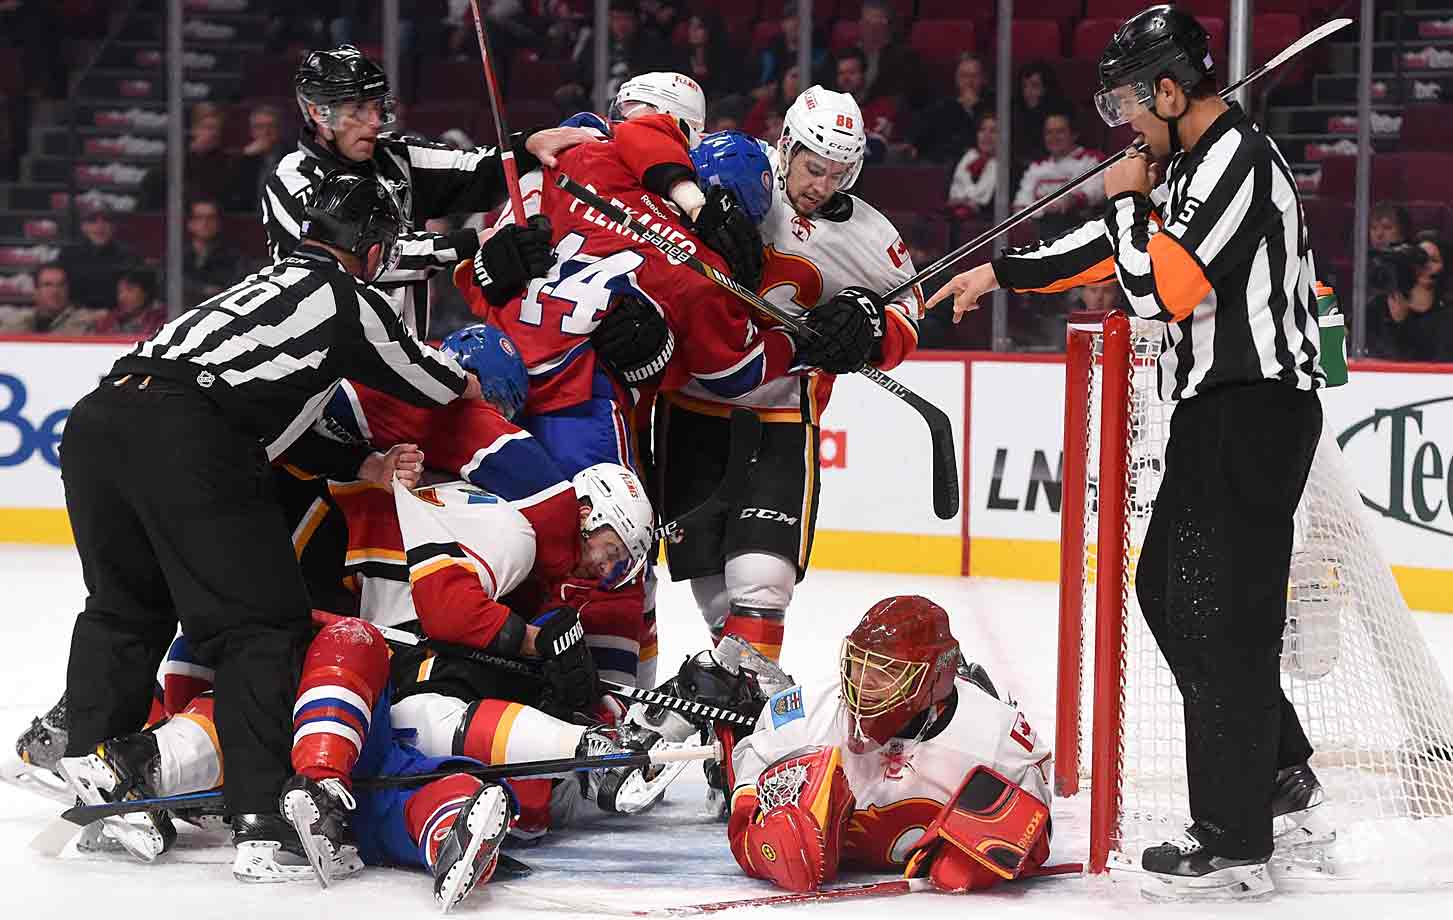 The Flames and Canadiens converge as Calgary netminder Jonas Hiller looks to exit the scrum, with puck in tow, at the Bell Centre in Montreal on November 2, 2014.